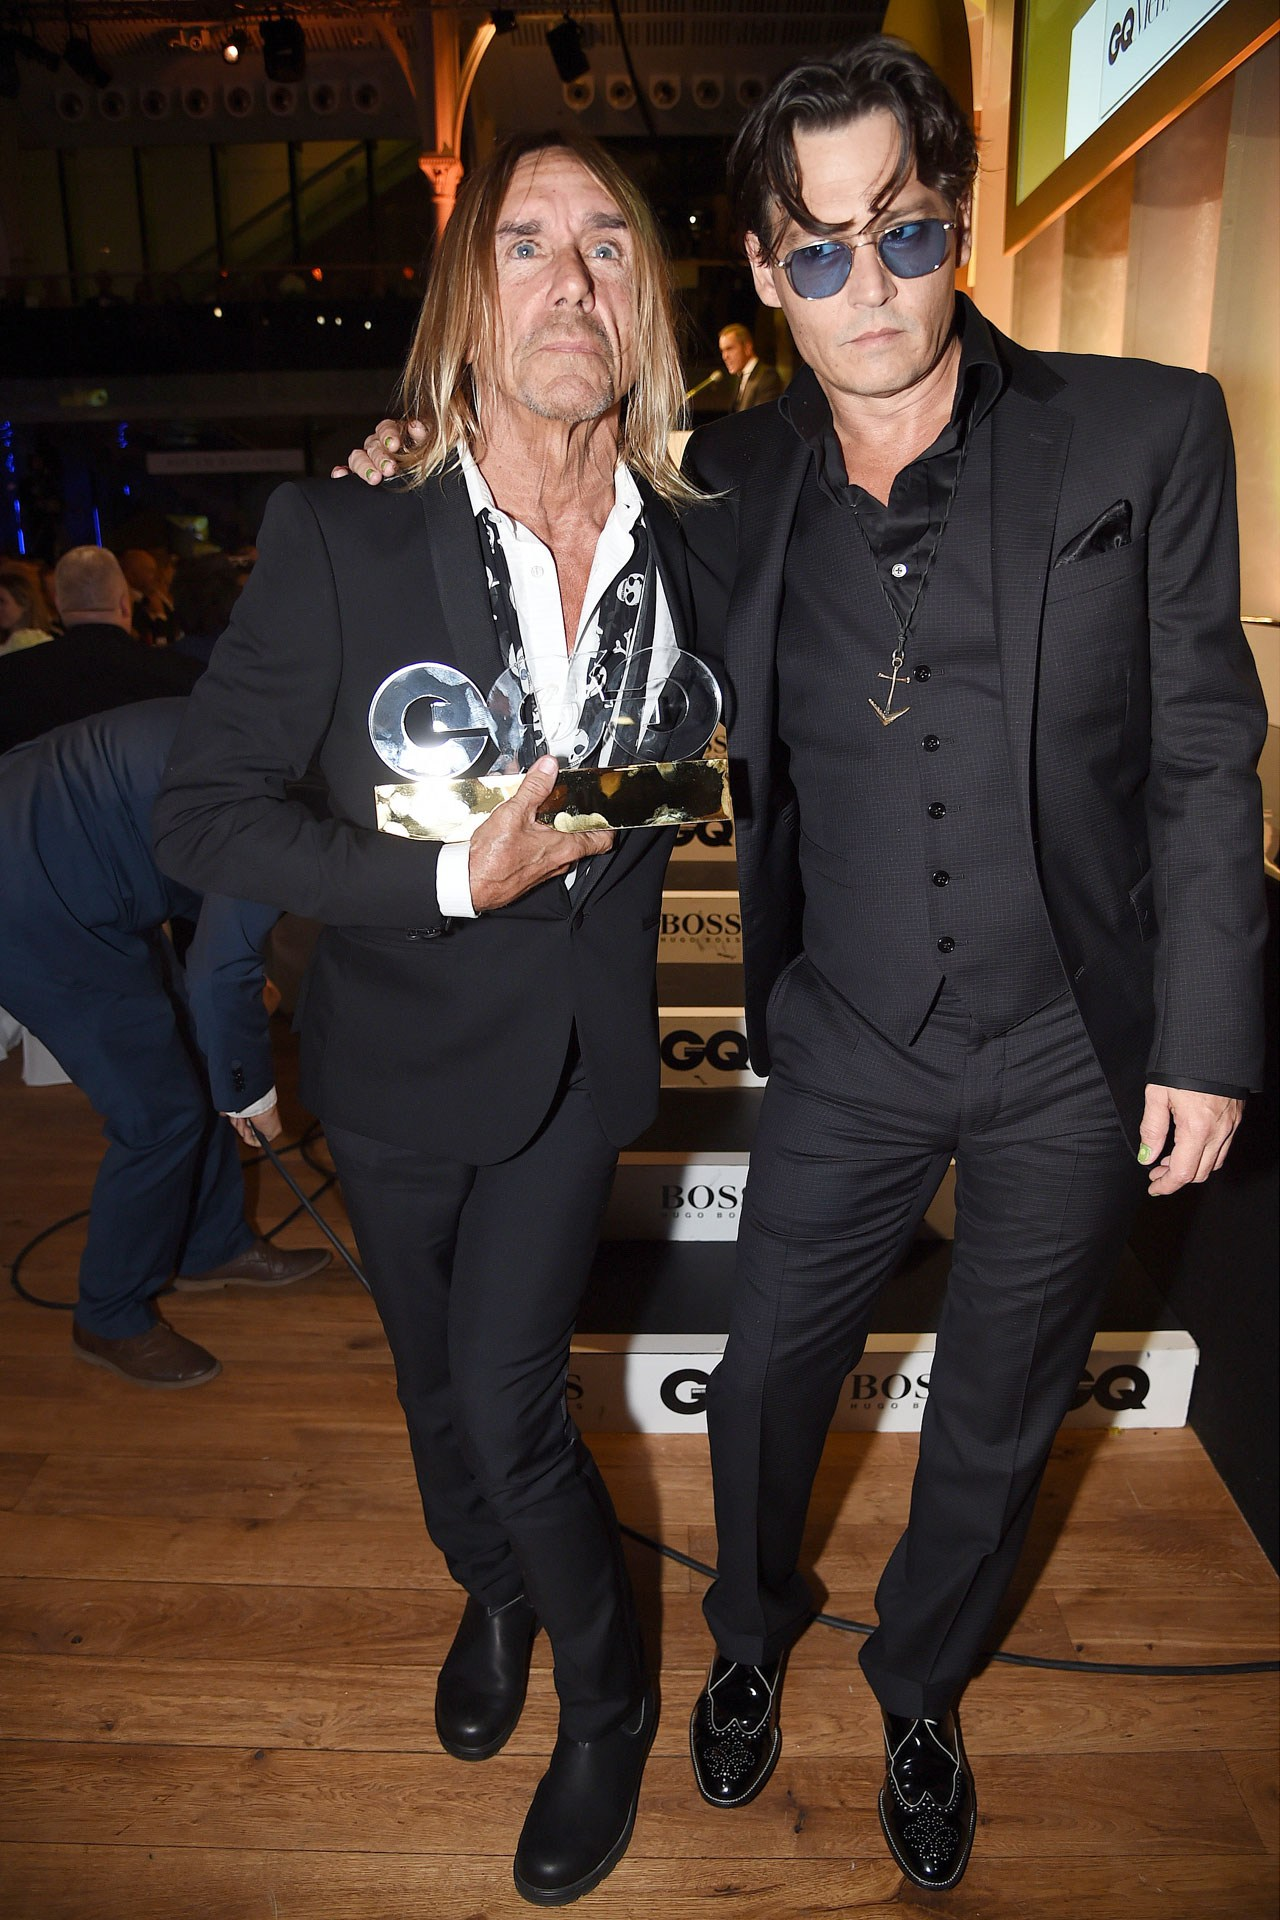 Johnny Depp presented Iggy Pop with the Icon award.